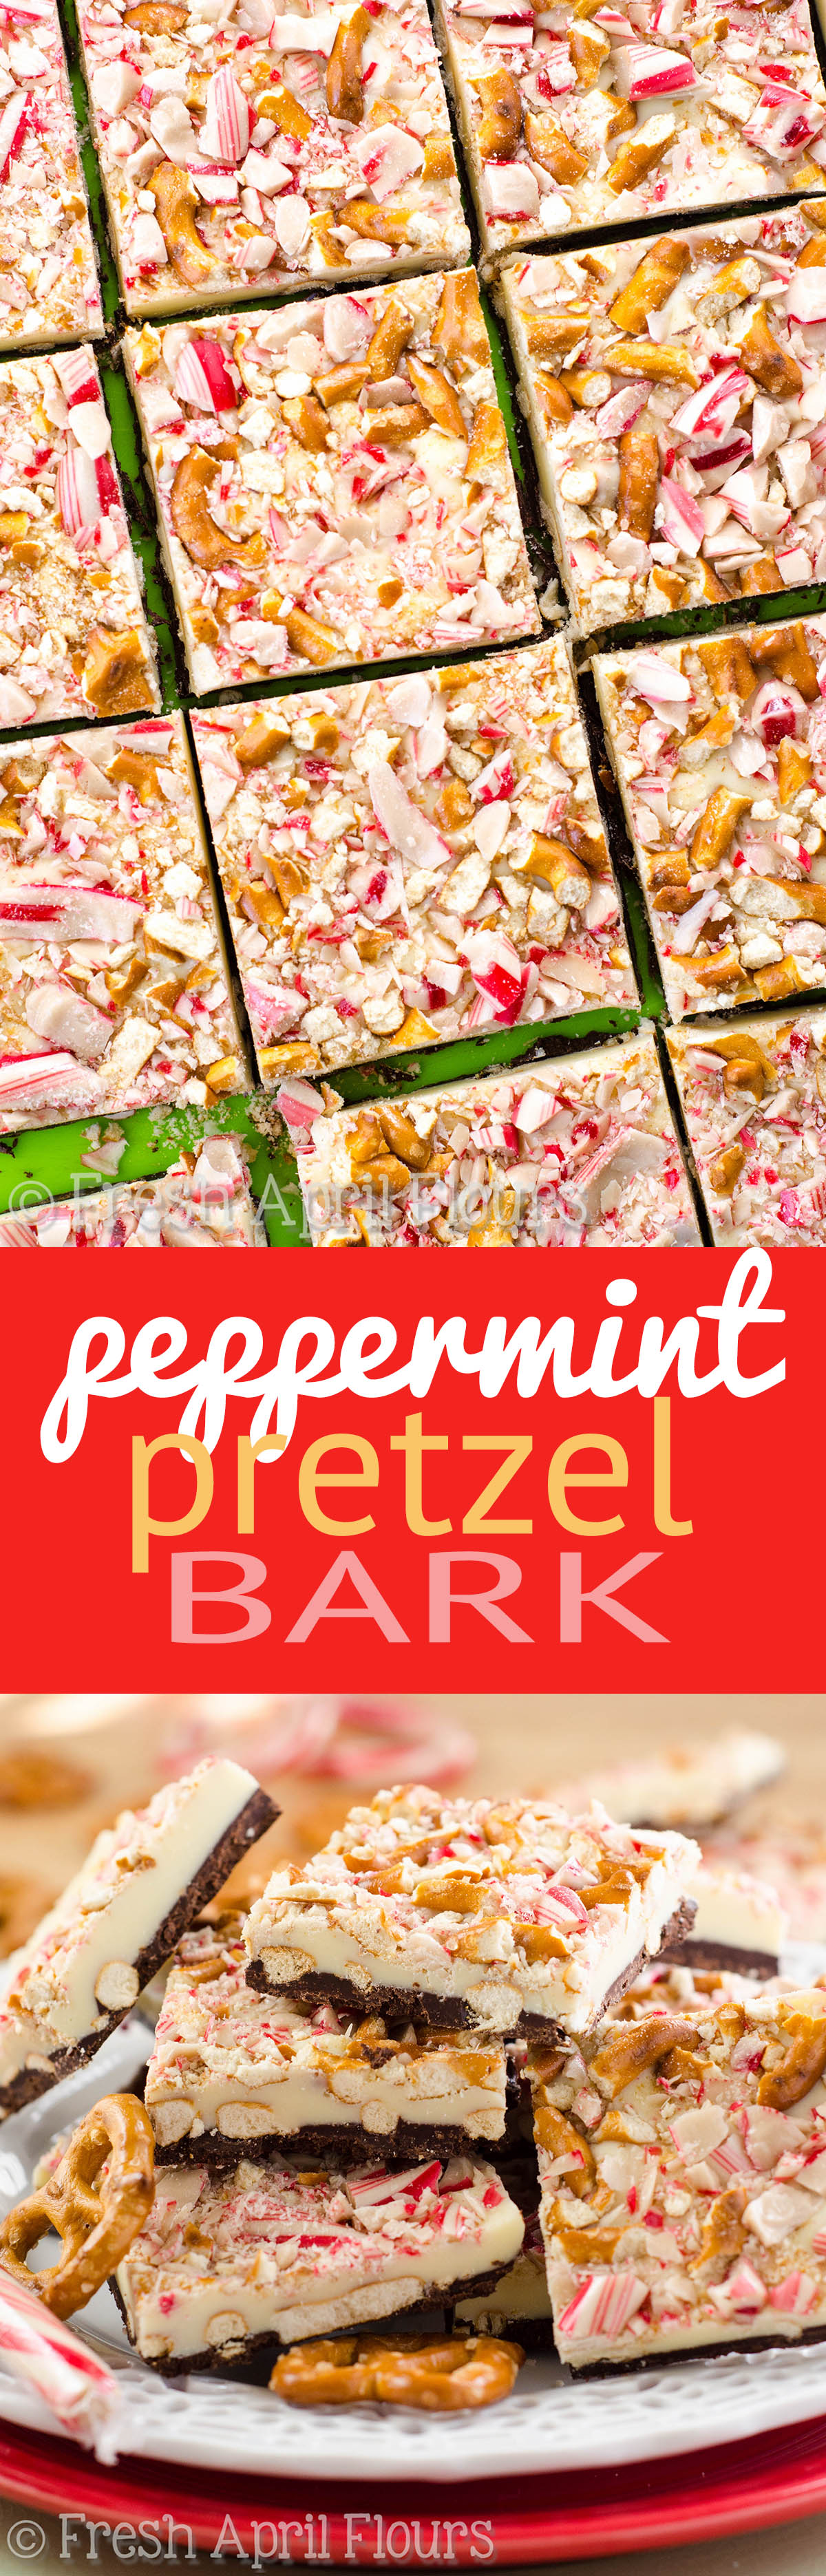 Peppermint Pretzel Bark: Classic peppermint bark has a salty twist this year! Perfect for cookie trays and homemade gifts.